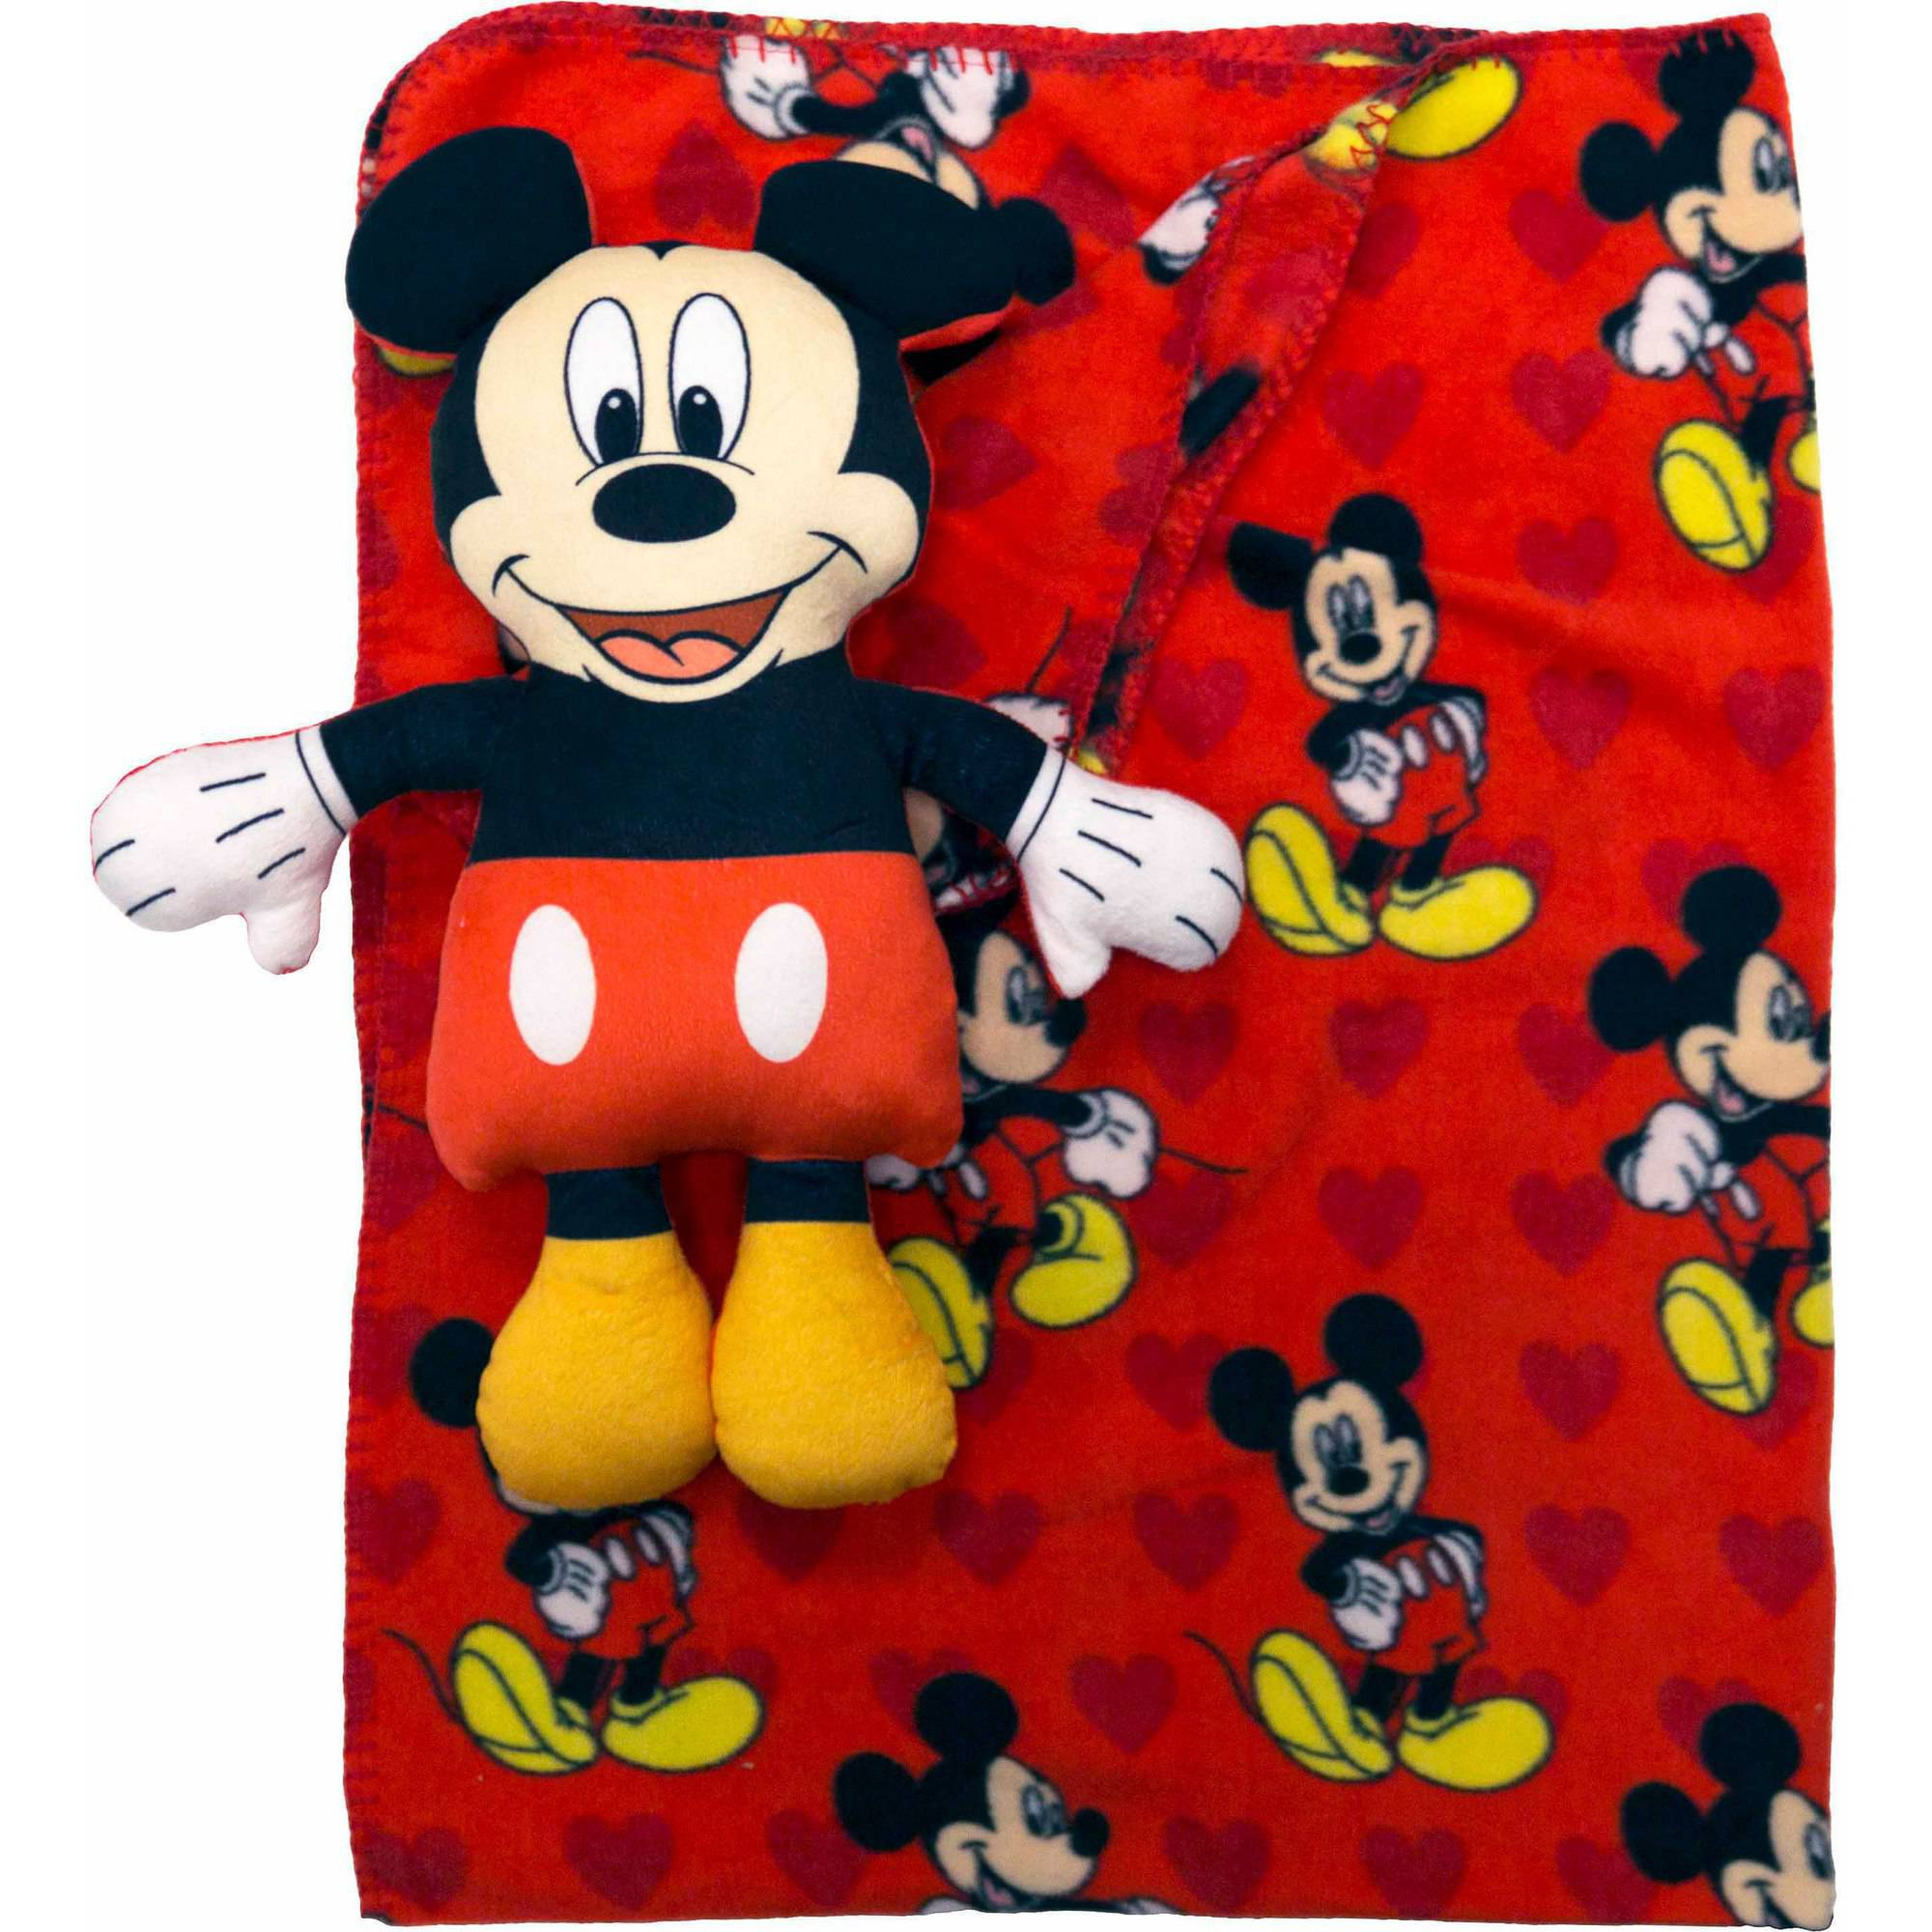 Disney Mickey Mouse Character Pillow and Throw Set